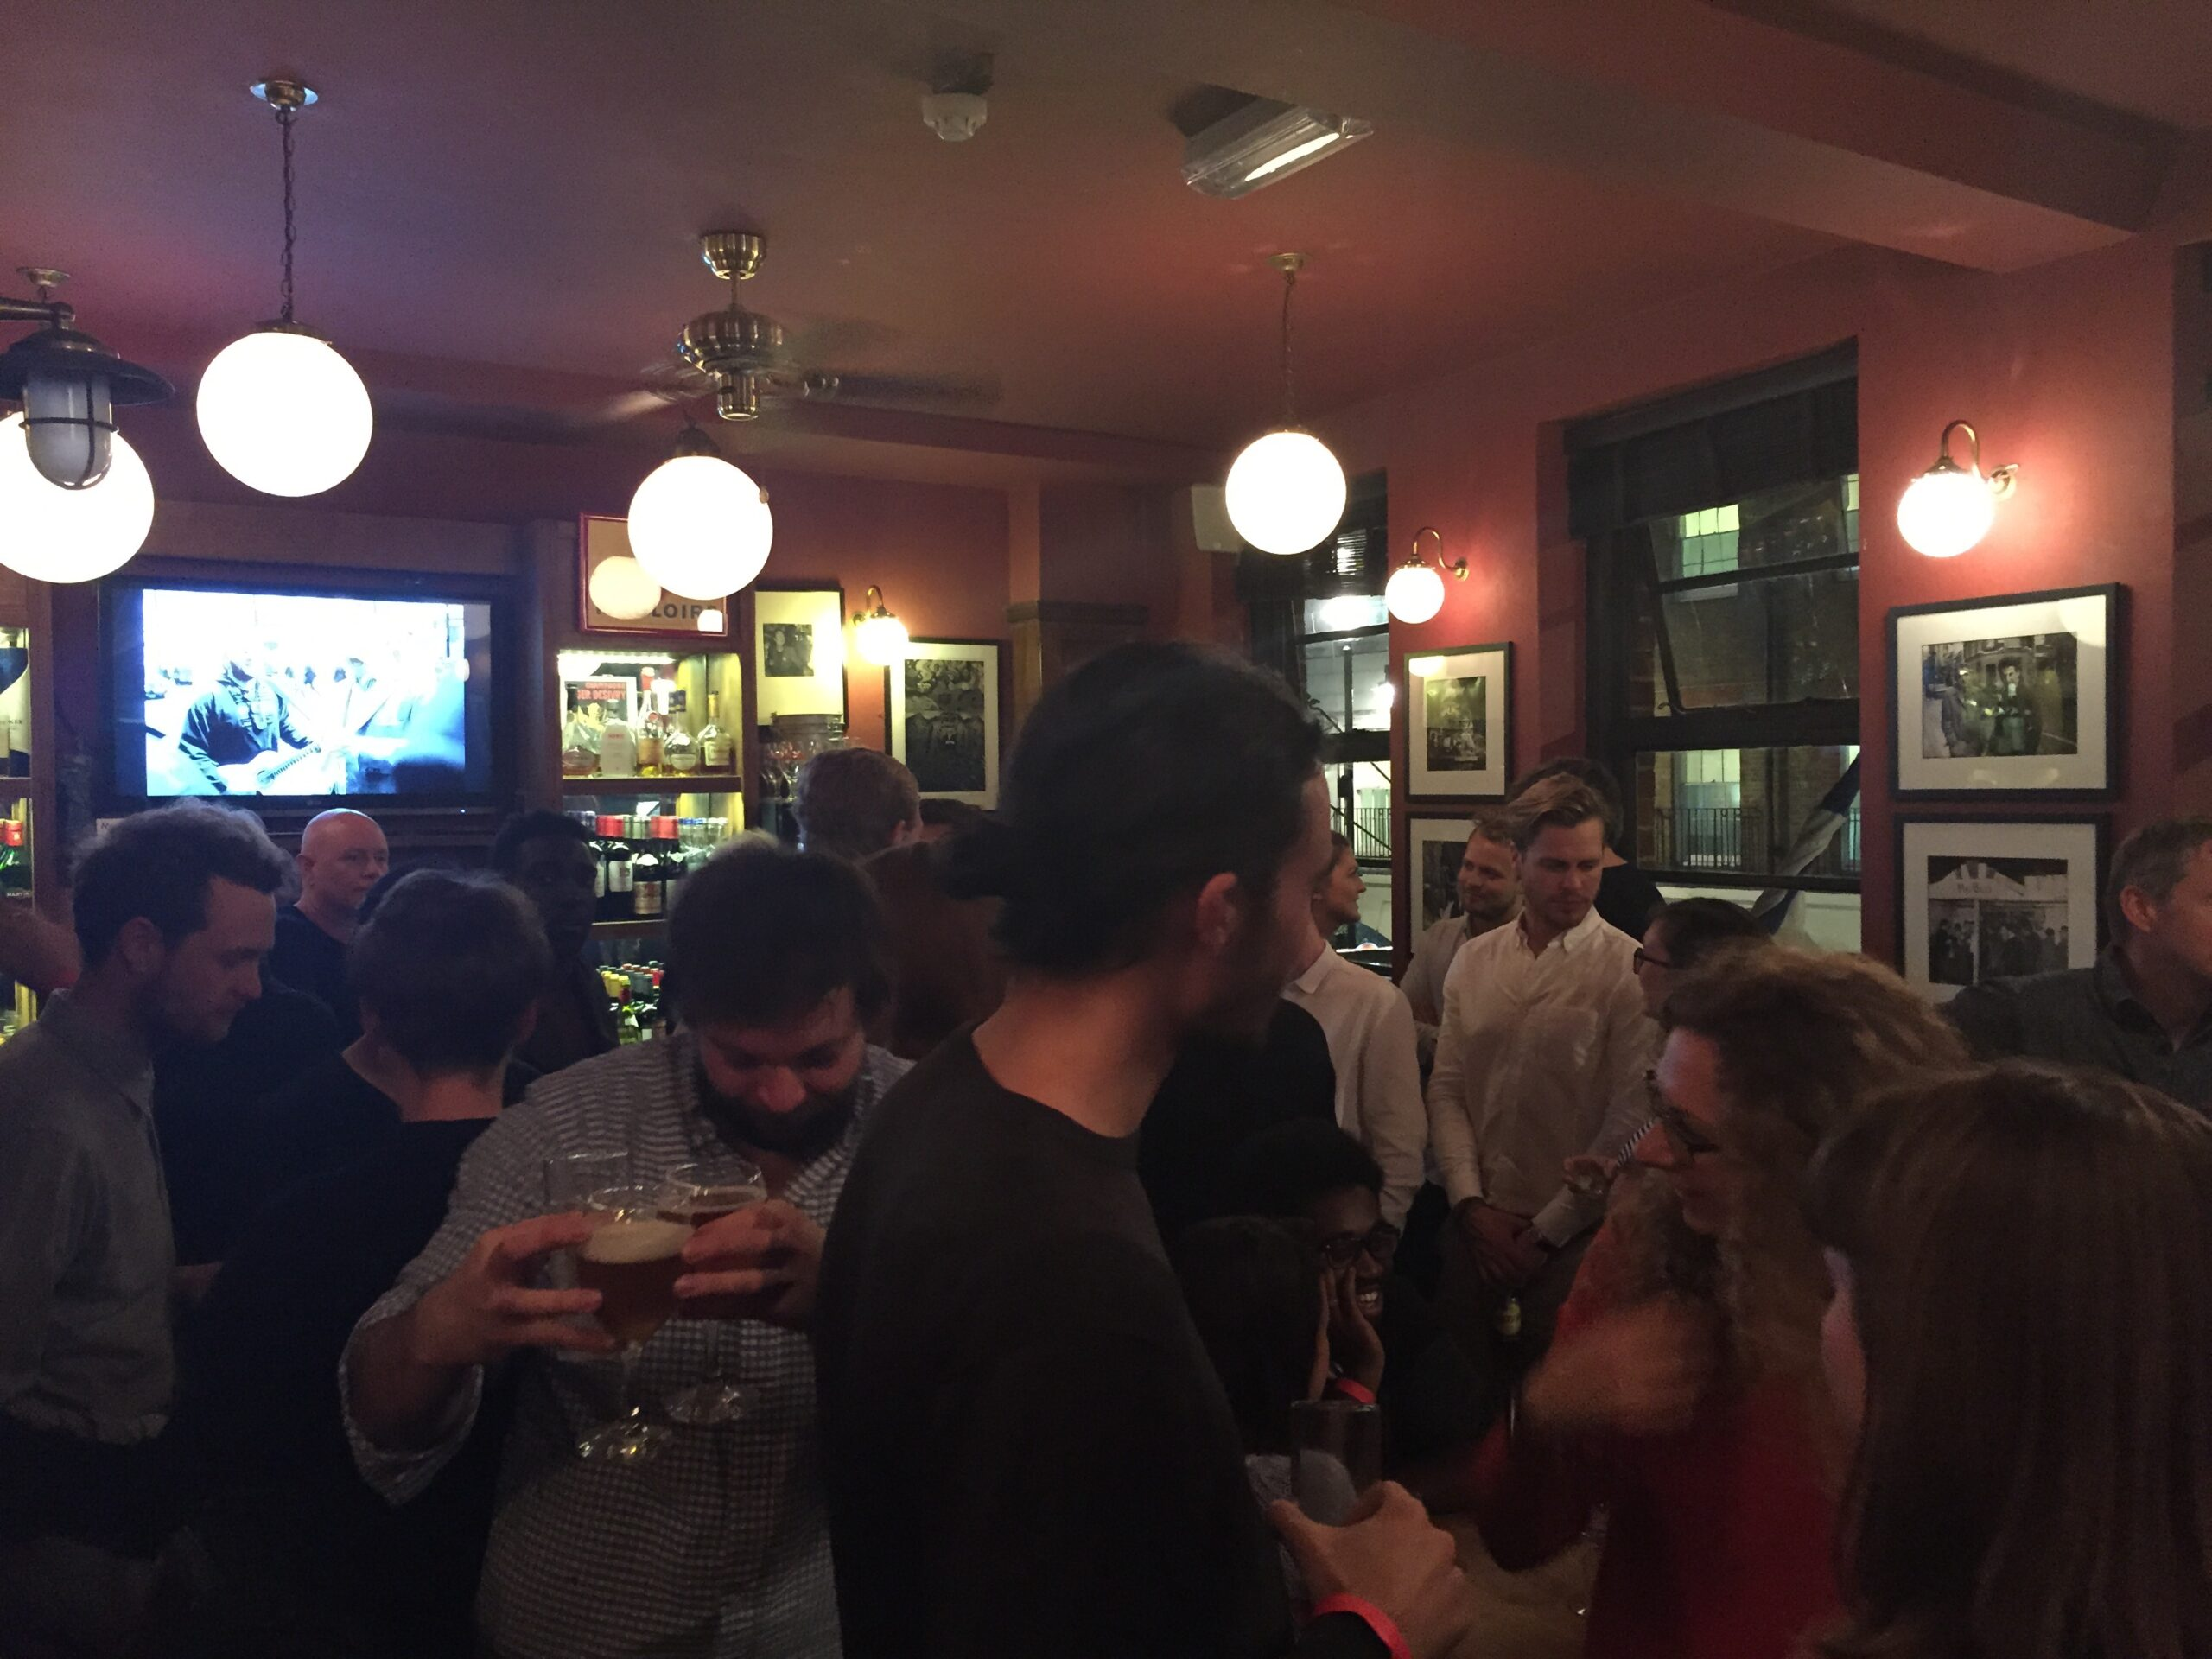 Fig. 35. The walk through Soho culminated with drinks at the French House.